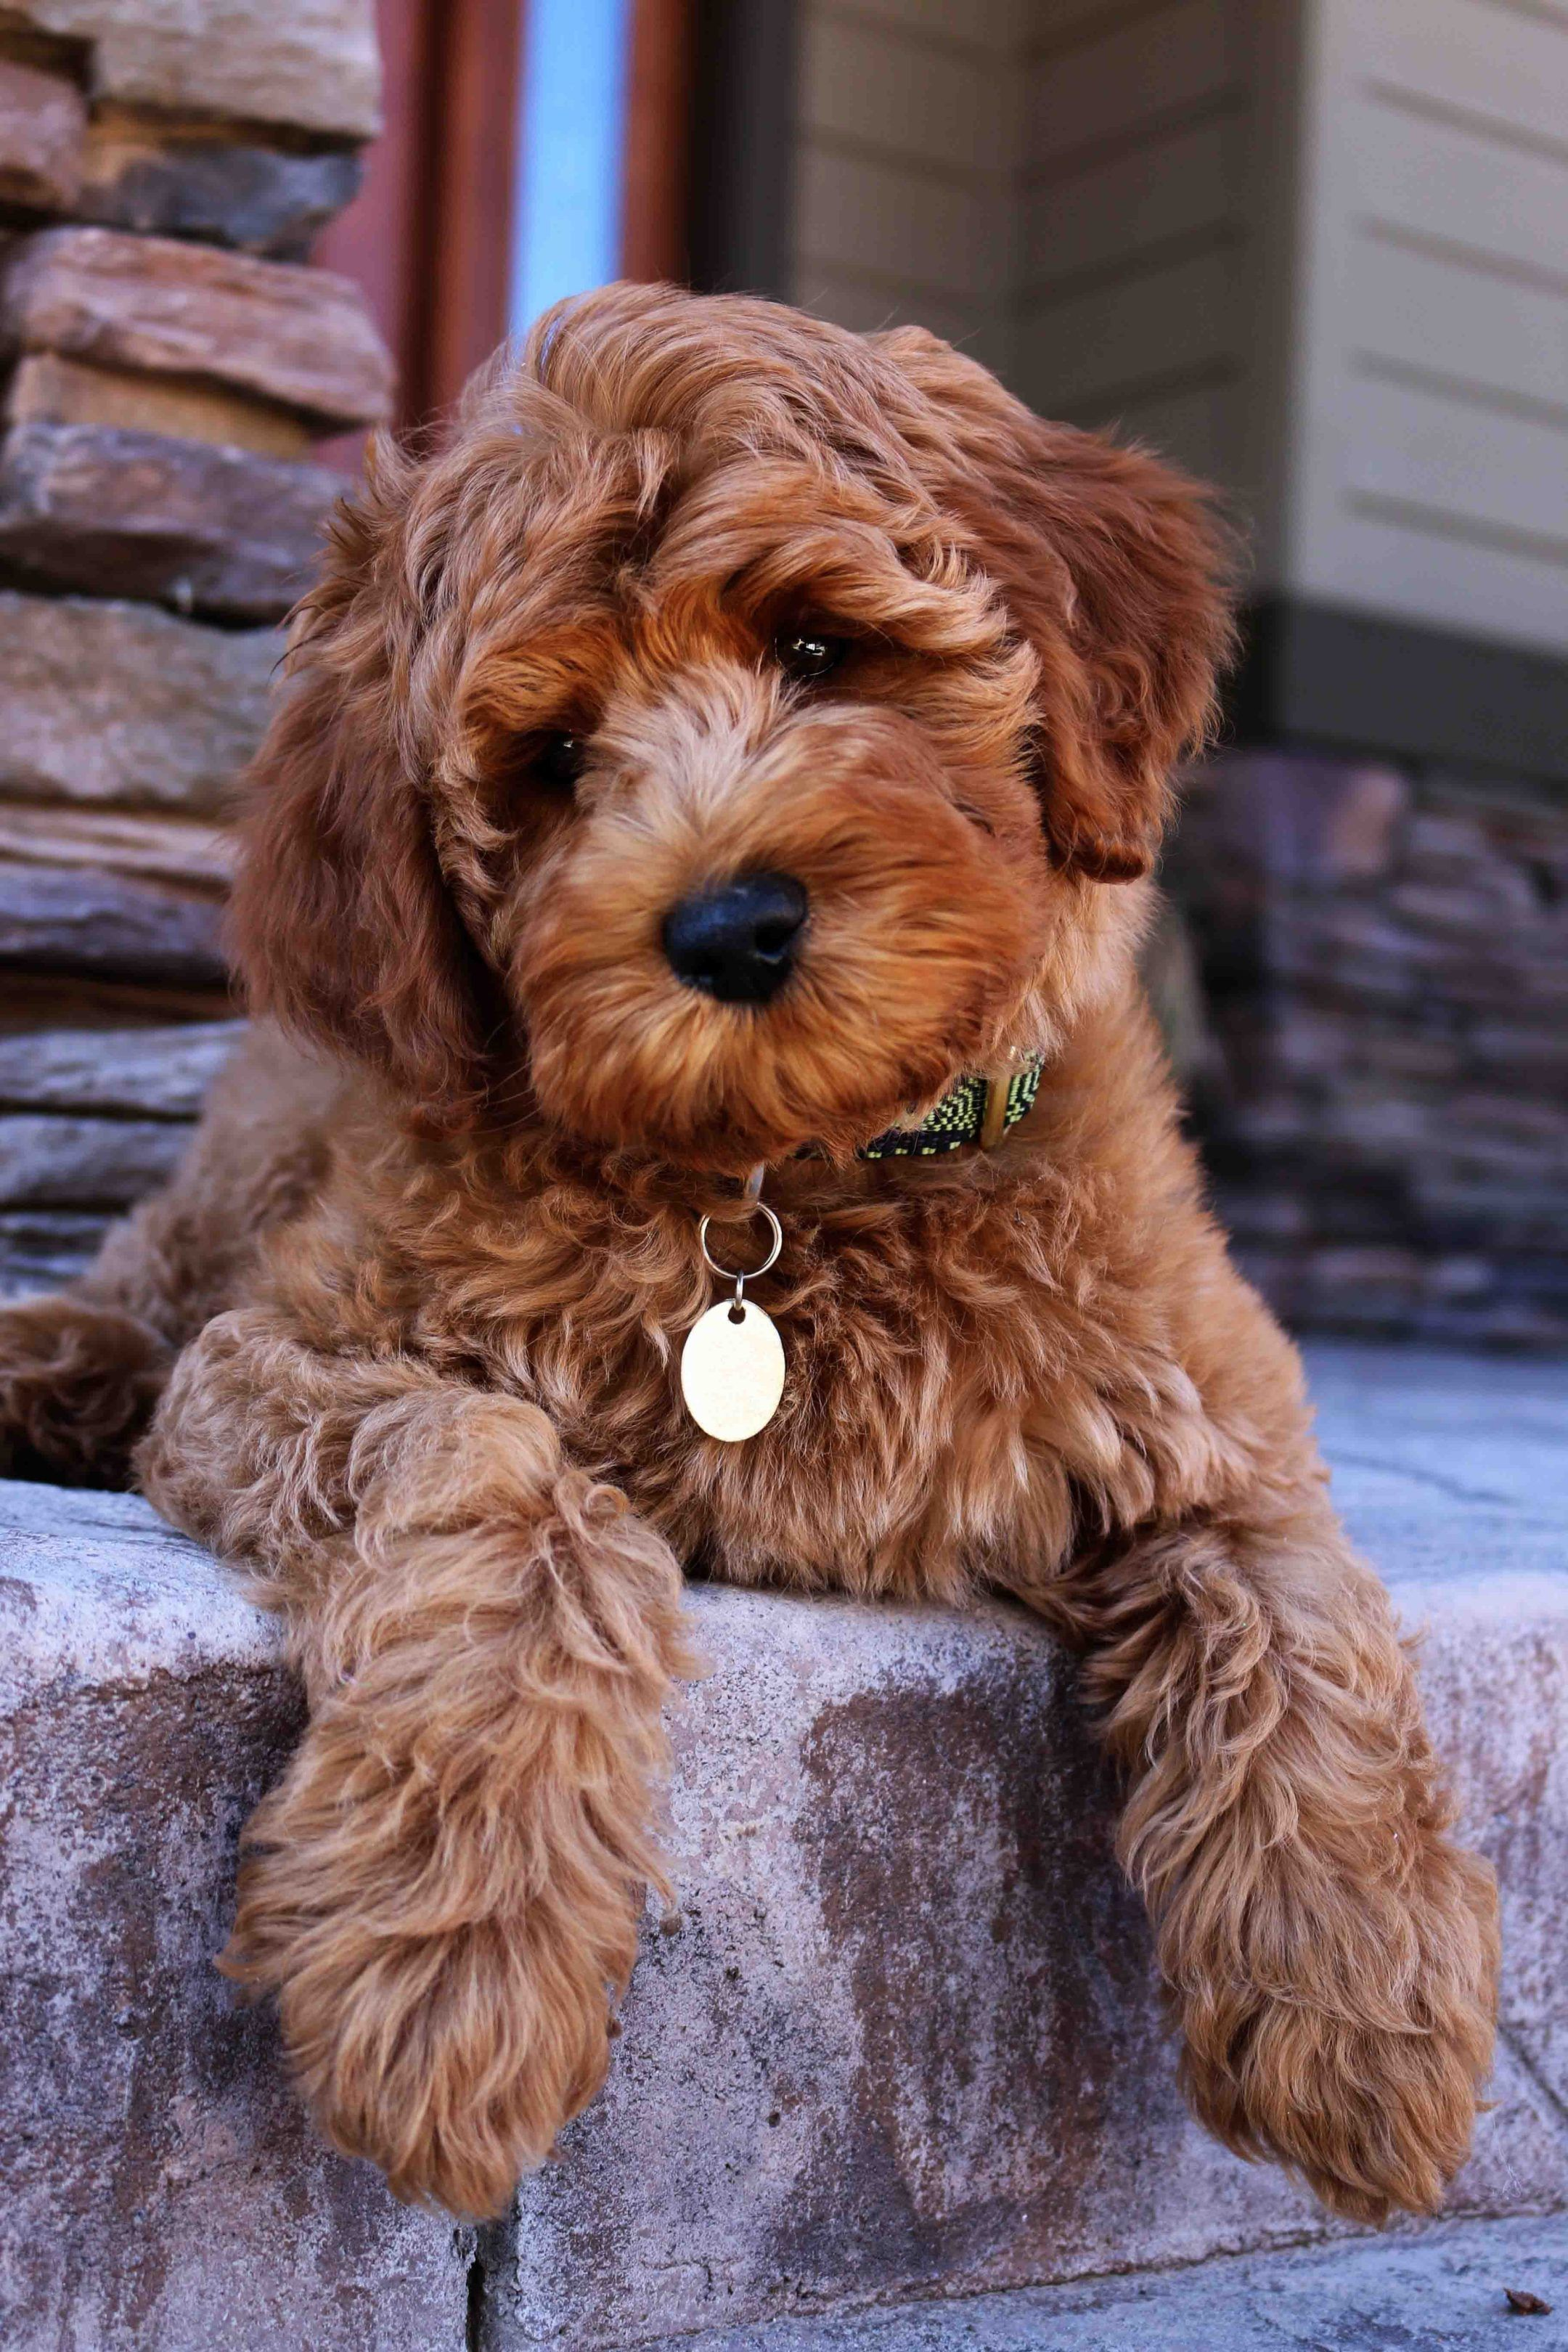 Pin By Alexis Morrison On Fluffs In 2020 Labradoodle Puppy Puppy Adoption Mini Goldendoodle Puppies